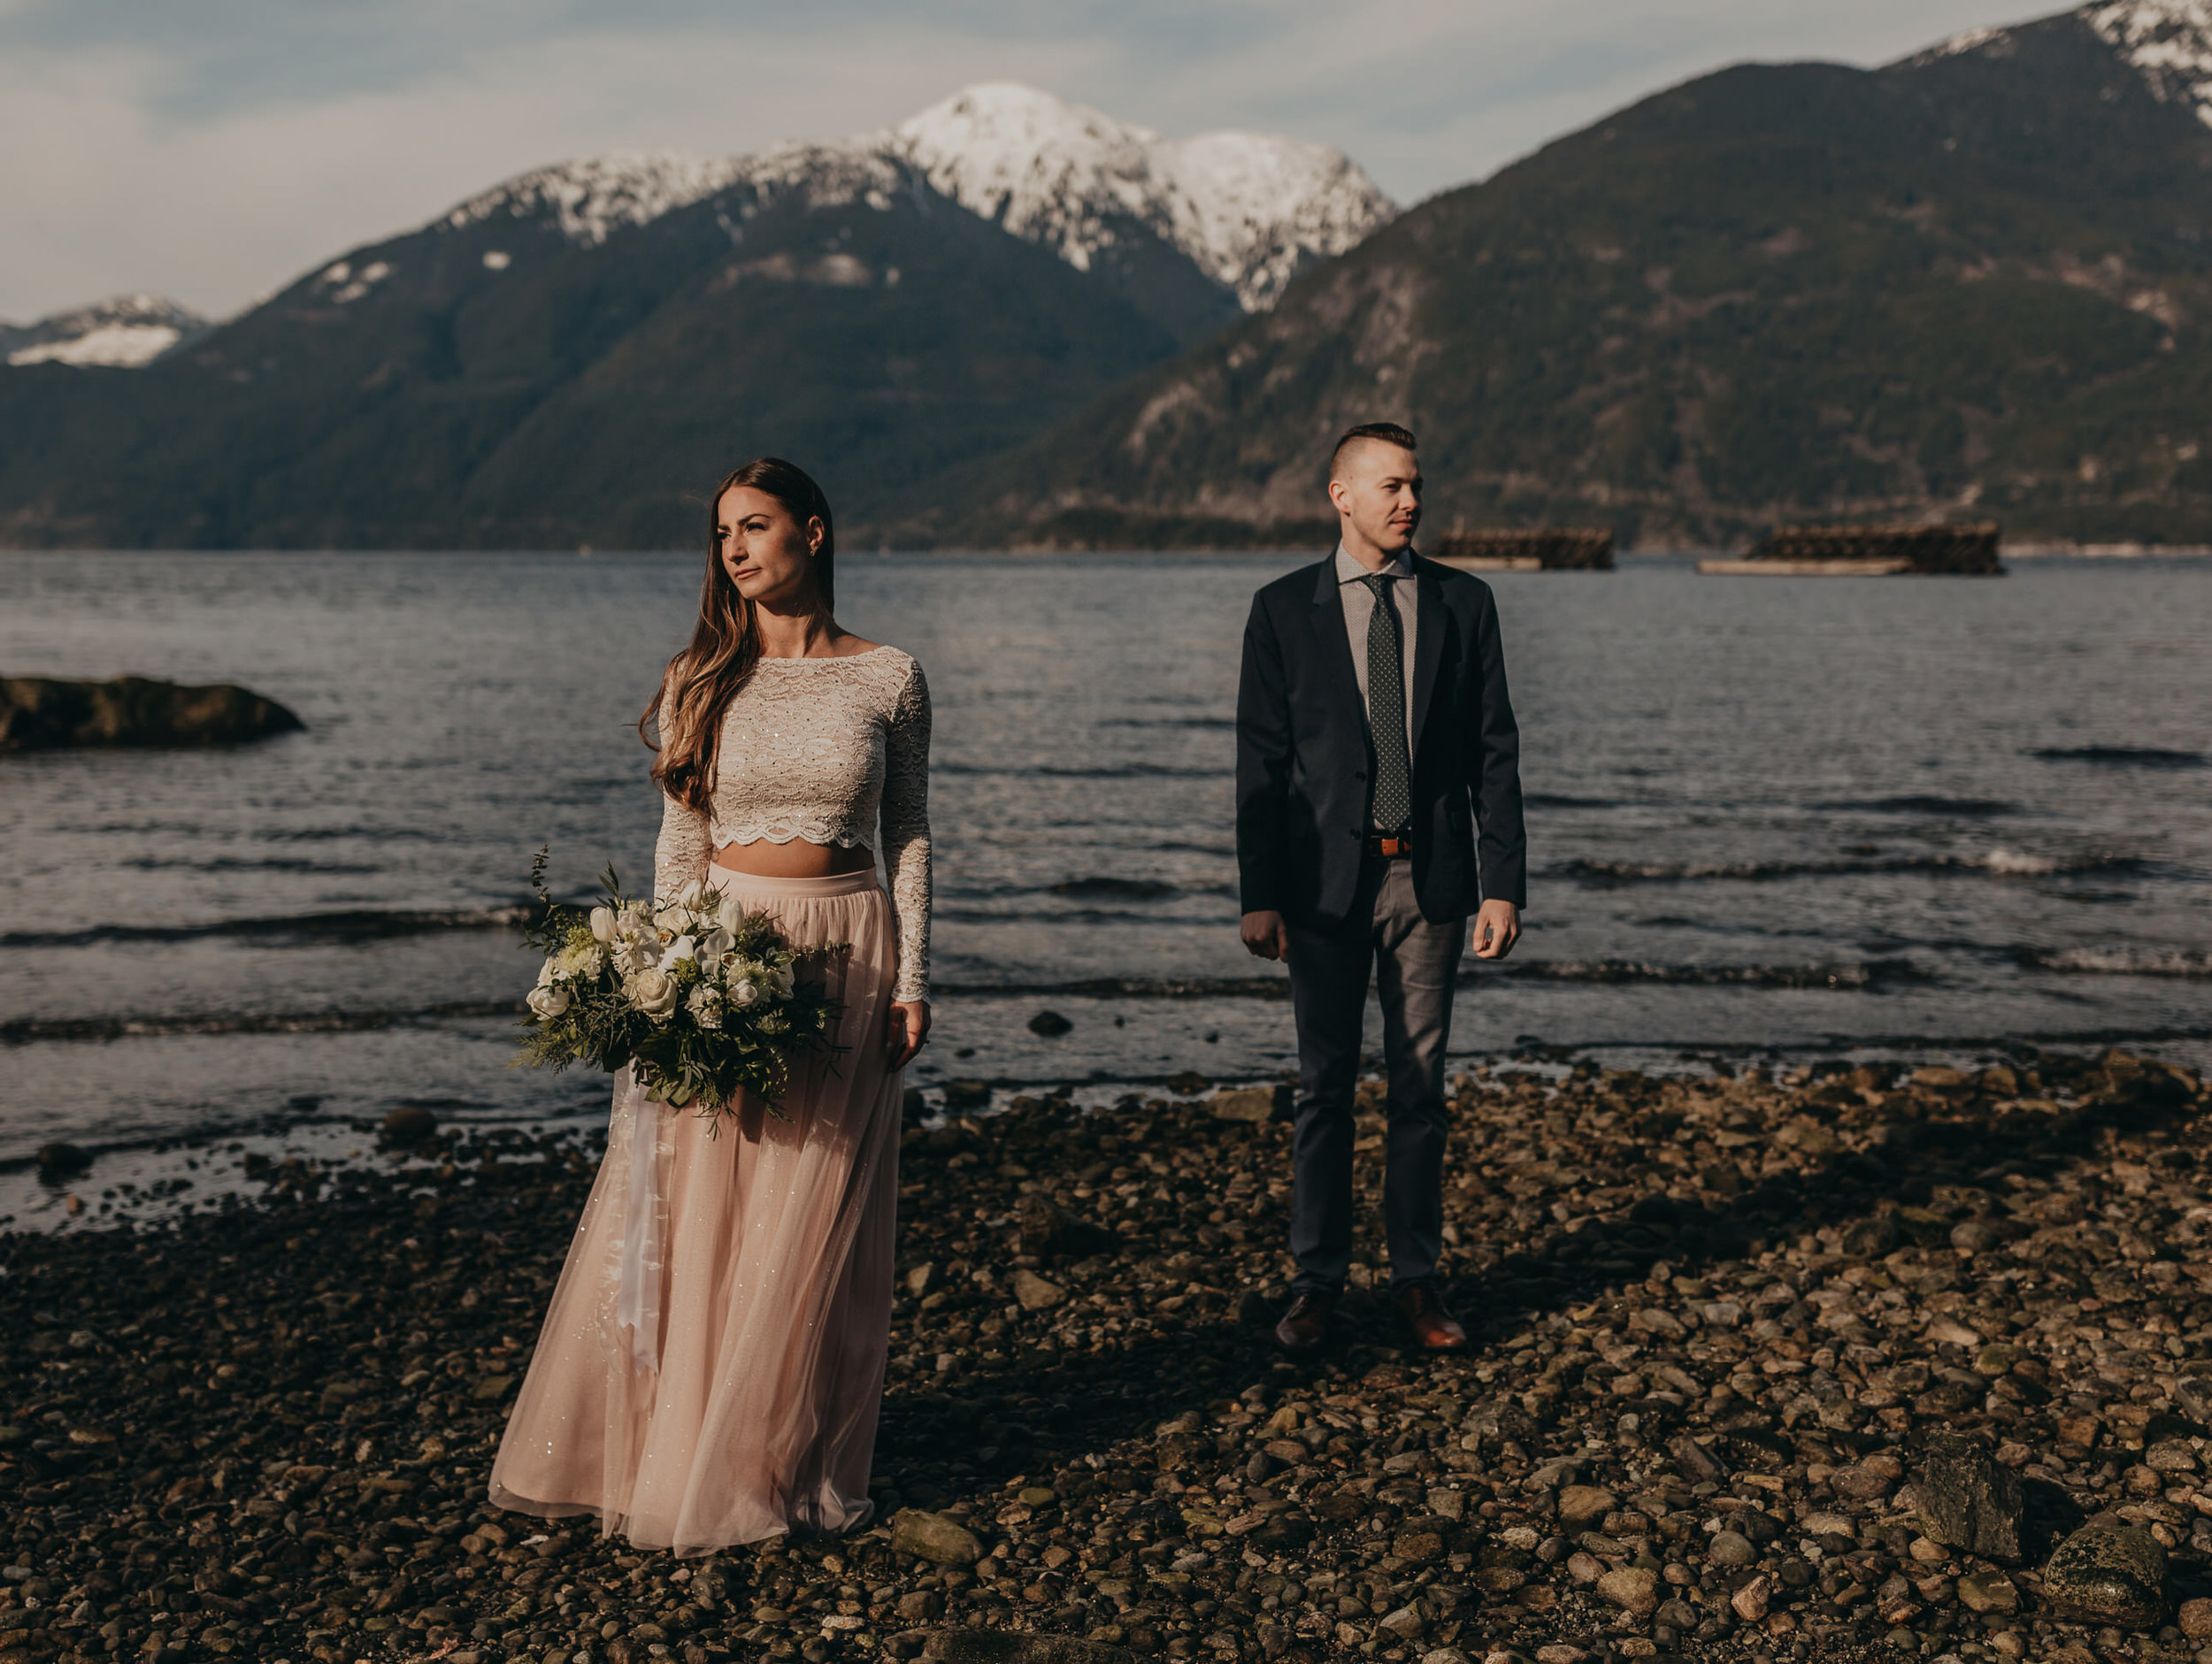 Squamish Engagement Photos - Porteau Cove Engagement Photos - Sunshine Coast Wedding Photographer - Vancouver Wedding Photographer - Squamish Wedding Photographer250.JPG